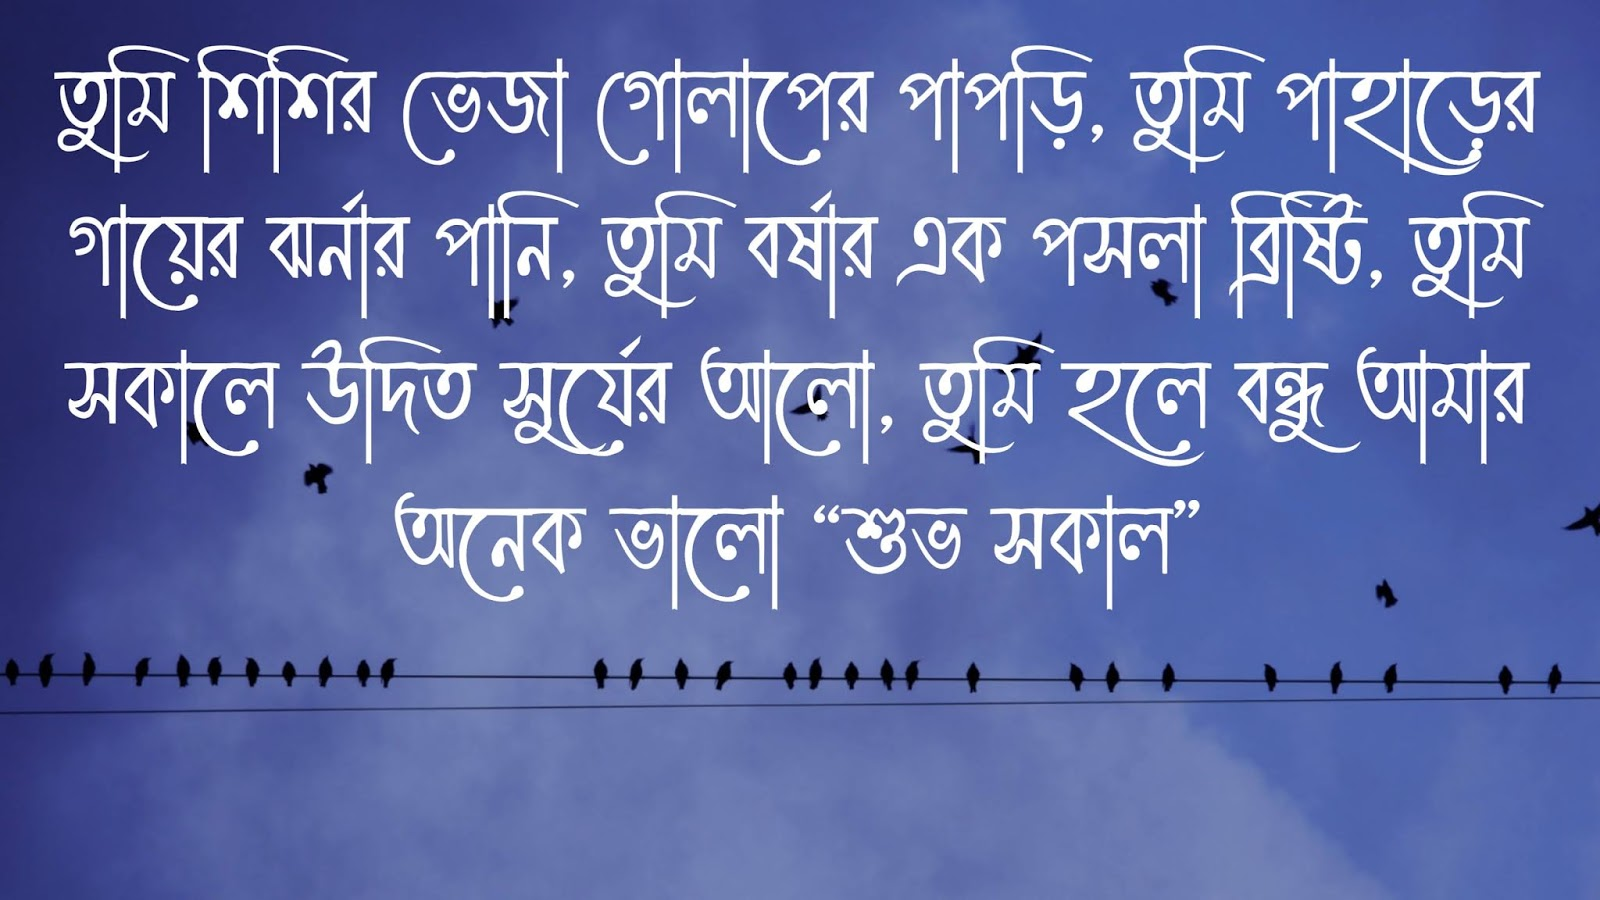 good morning msg in bengali